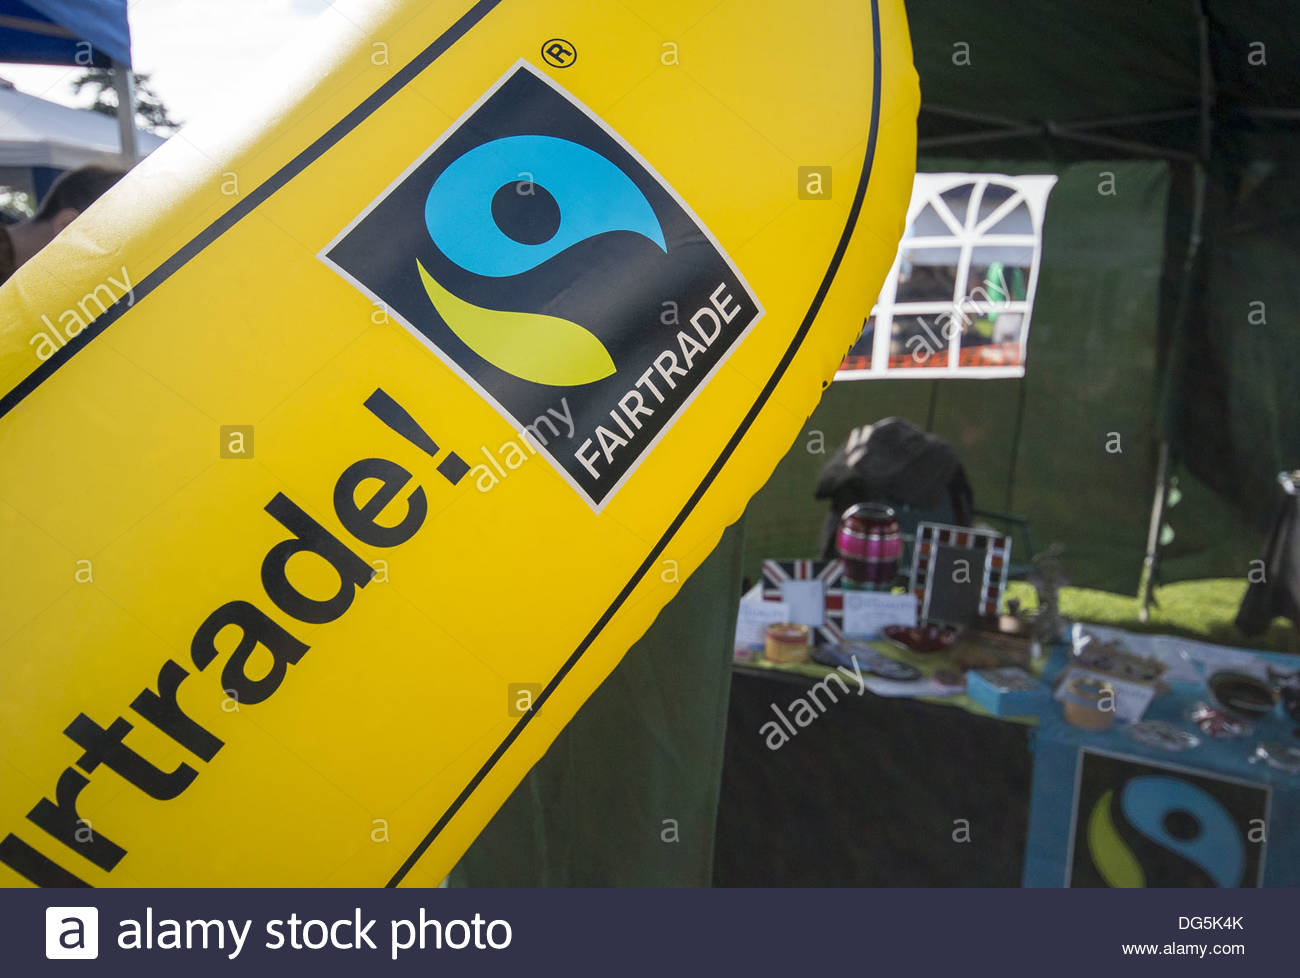 Fair Trade stall with inflatable banana showing the Fair Trade logo - Stock Image